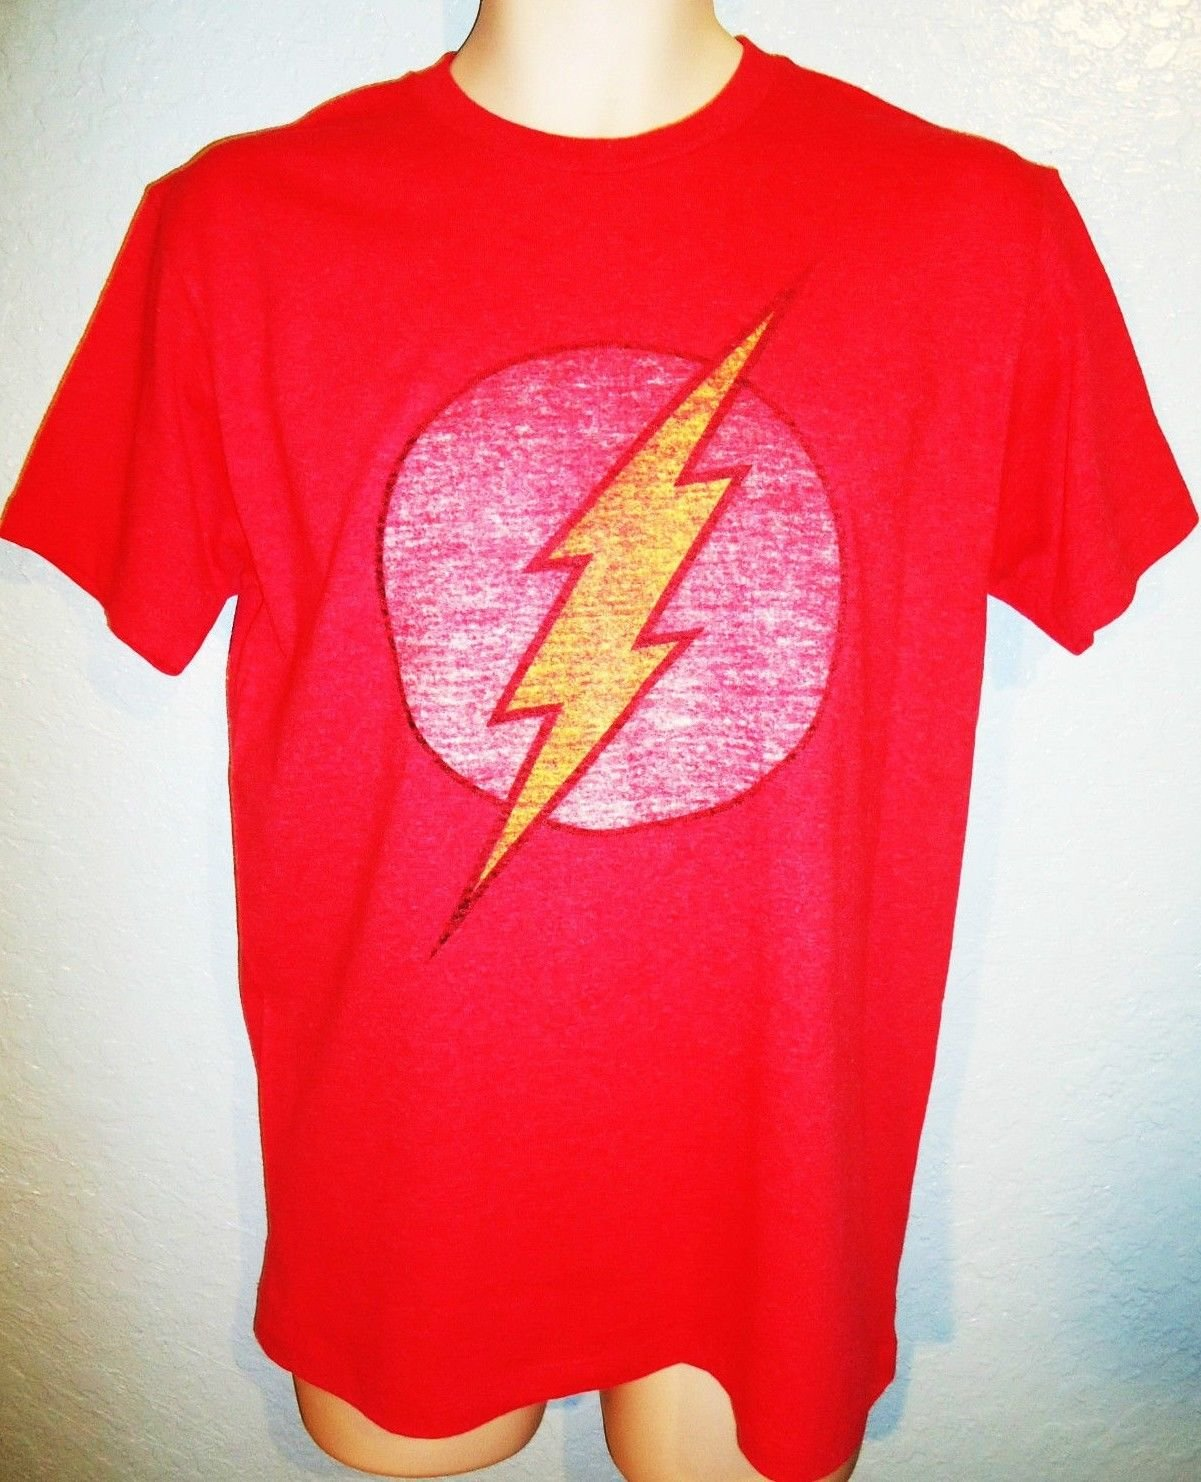 DC COMICS - THE FLASH - RED - RETRO - T-SHIRT - XL - NEW - JUSTICE LEAGUE